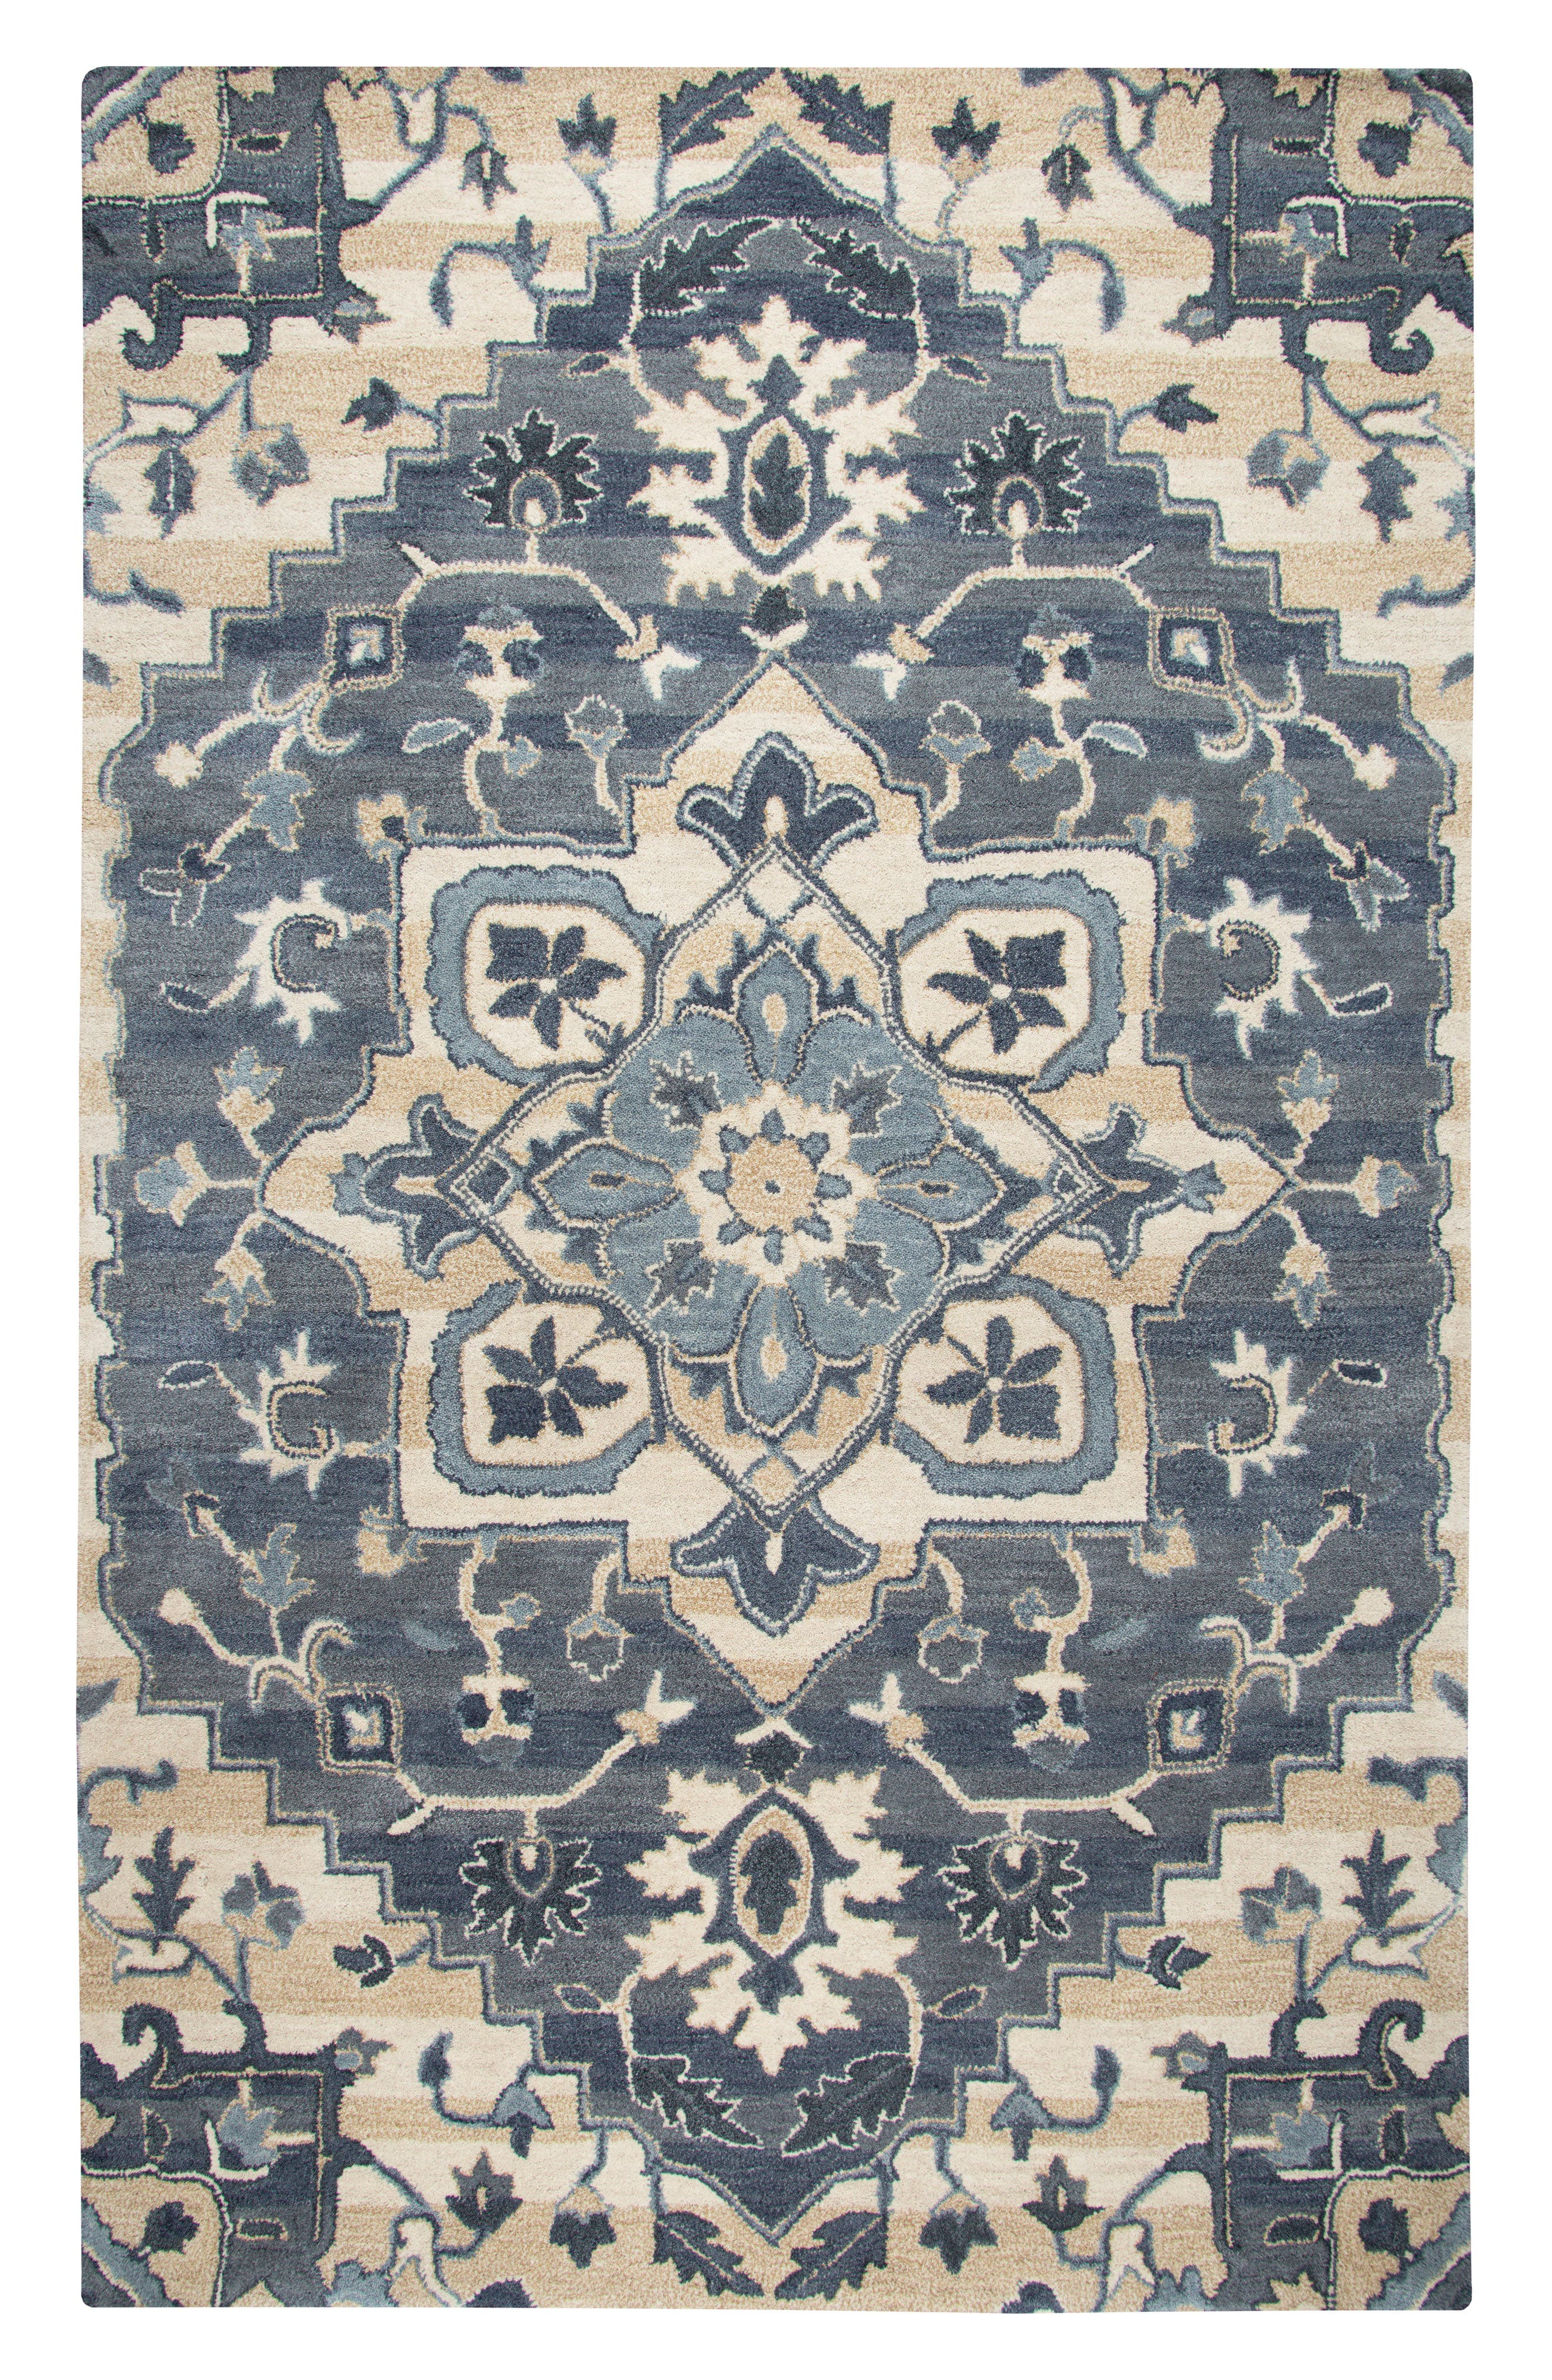 Veronica Hand Tufted Wool Rug,                             Main thumbnail 1, color,                             400